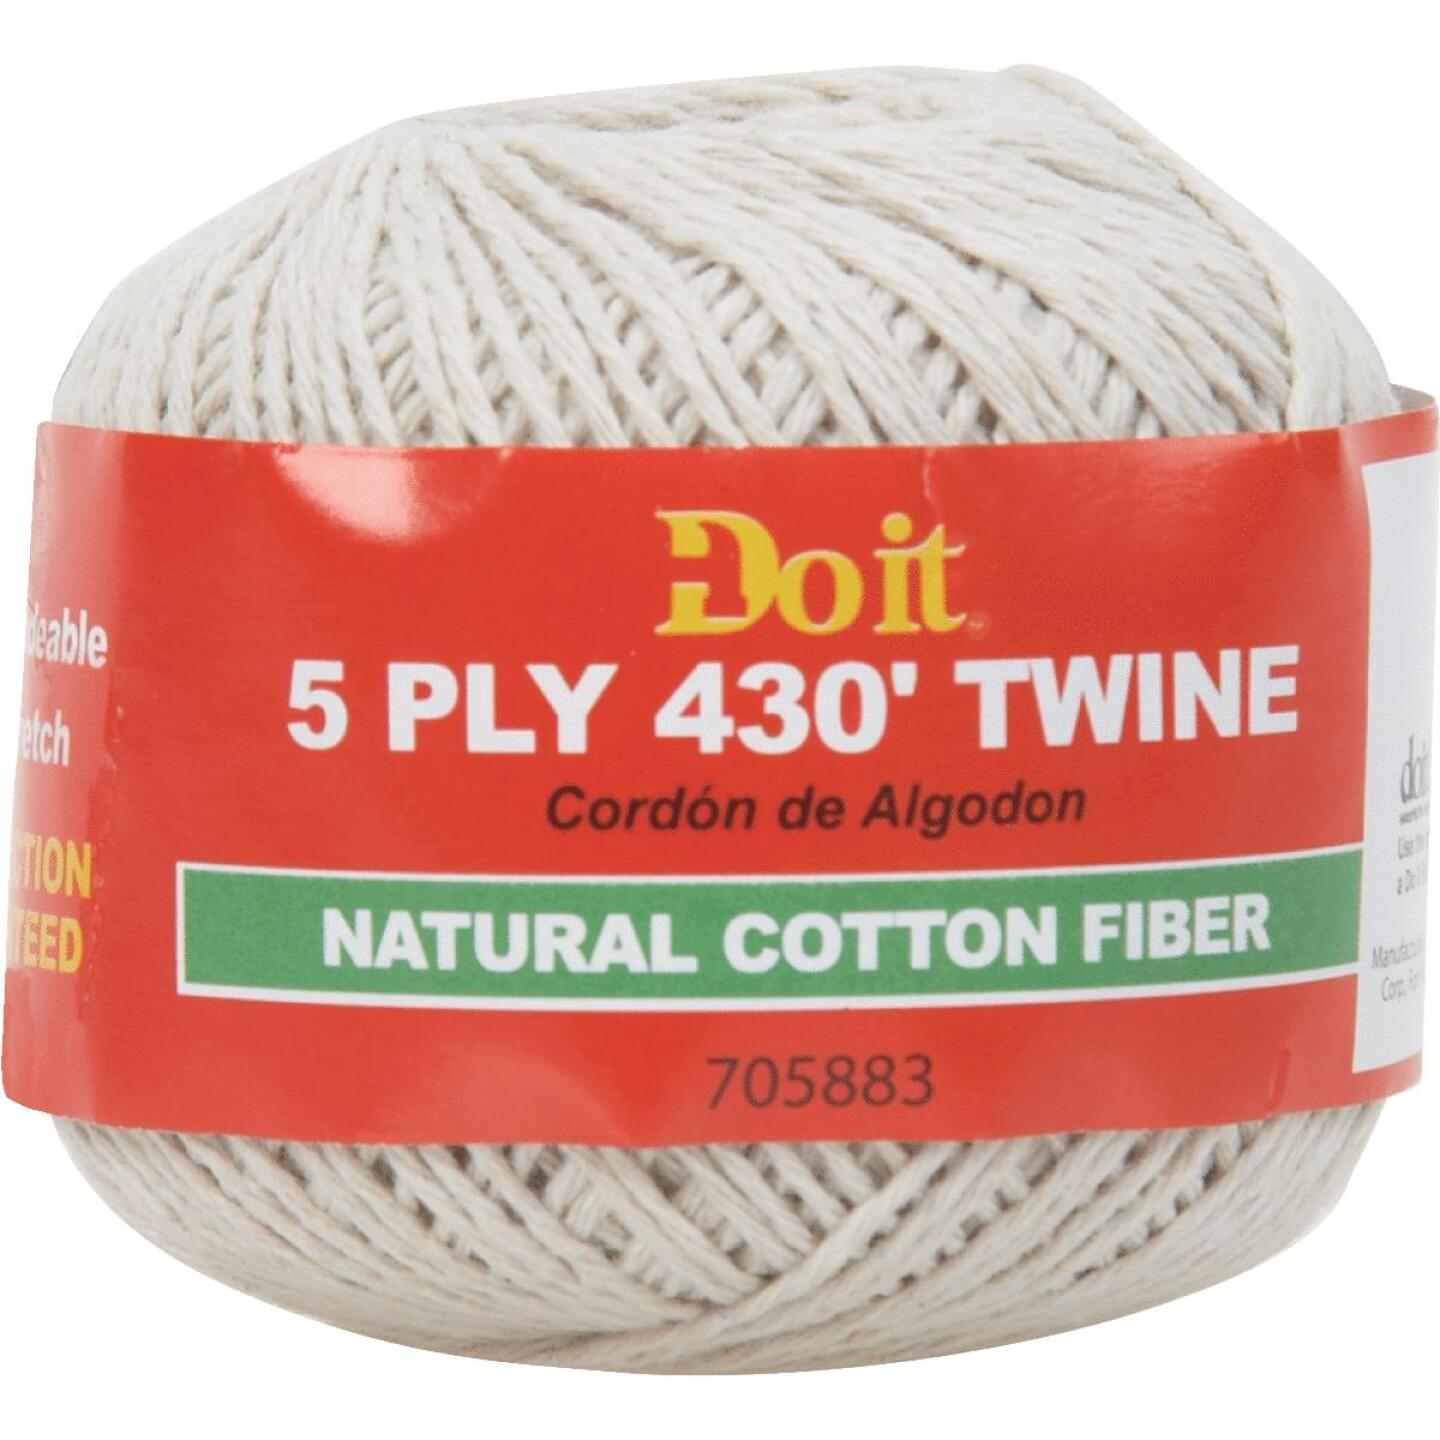 Do it 5-Ply x 430 Ft. Natural Cotton Twine Image 1